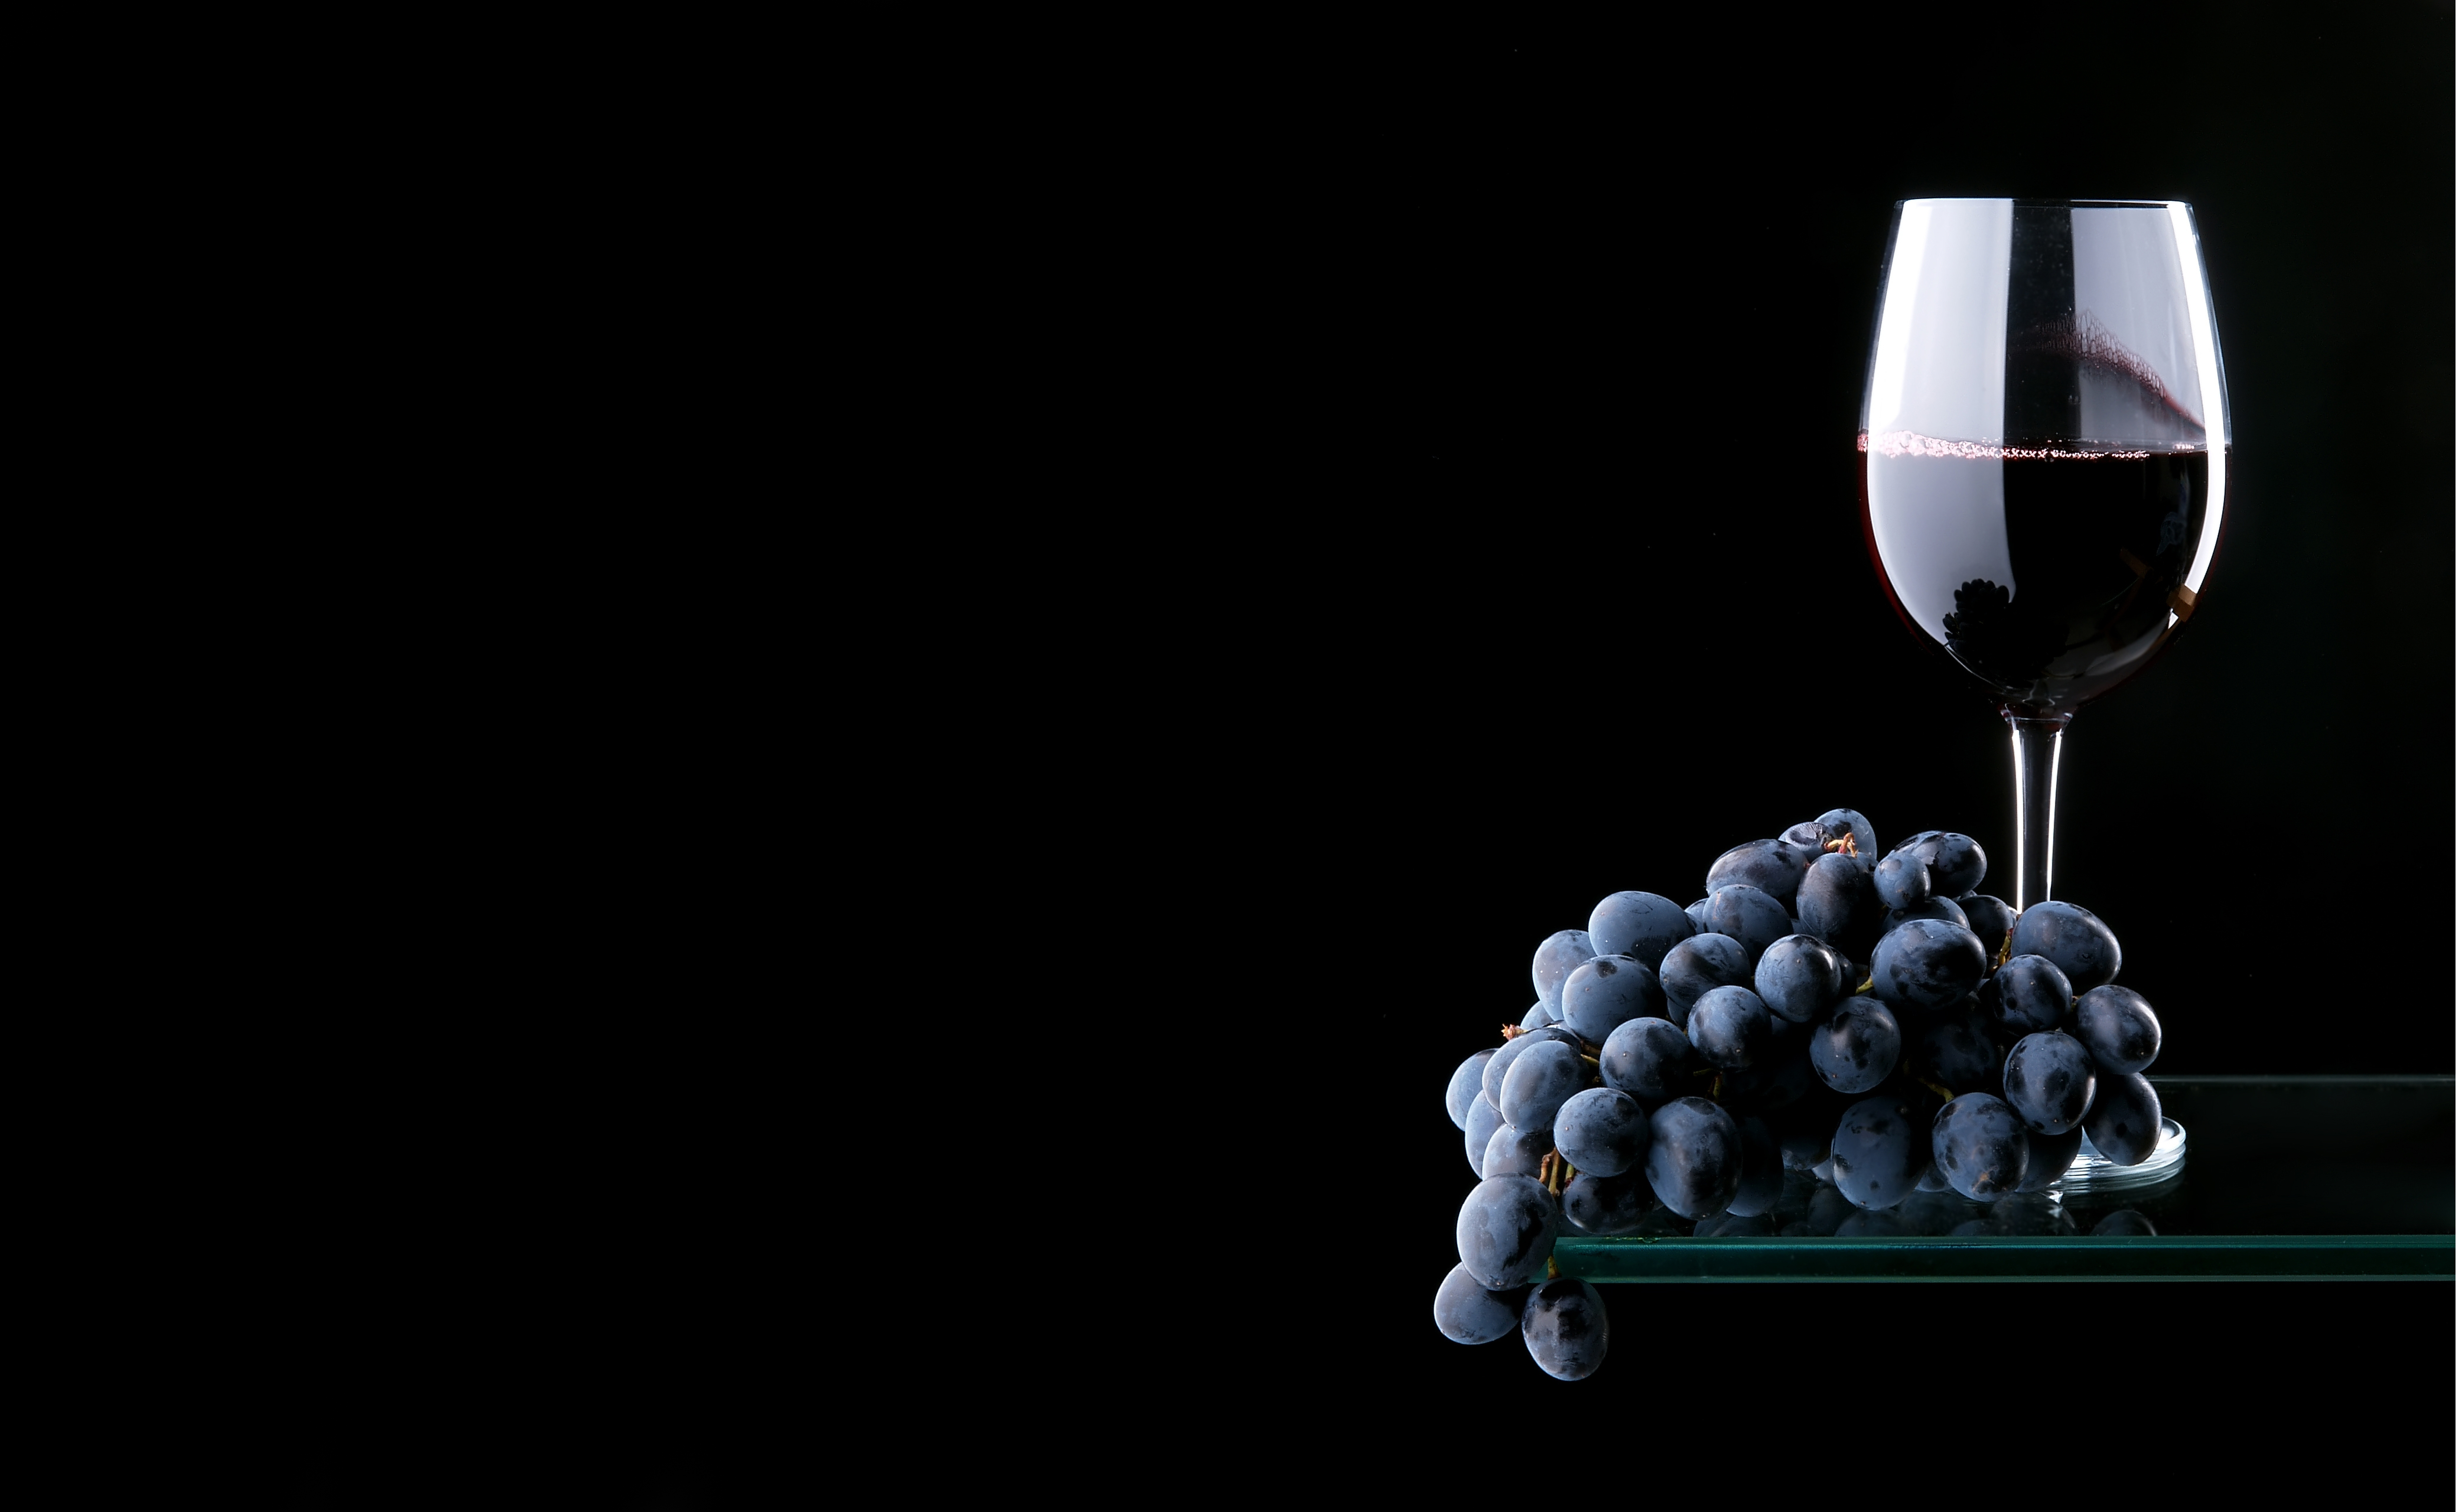 Black background grapes wine wallpapers and images   wallpapers 8319x5120